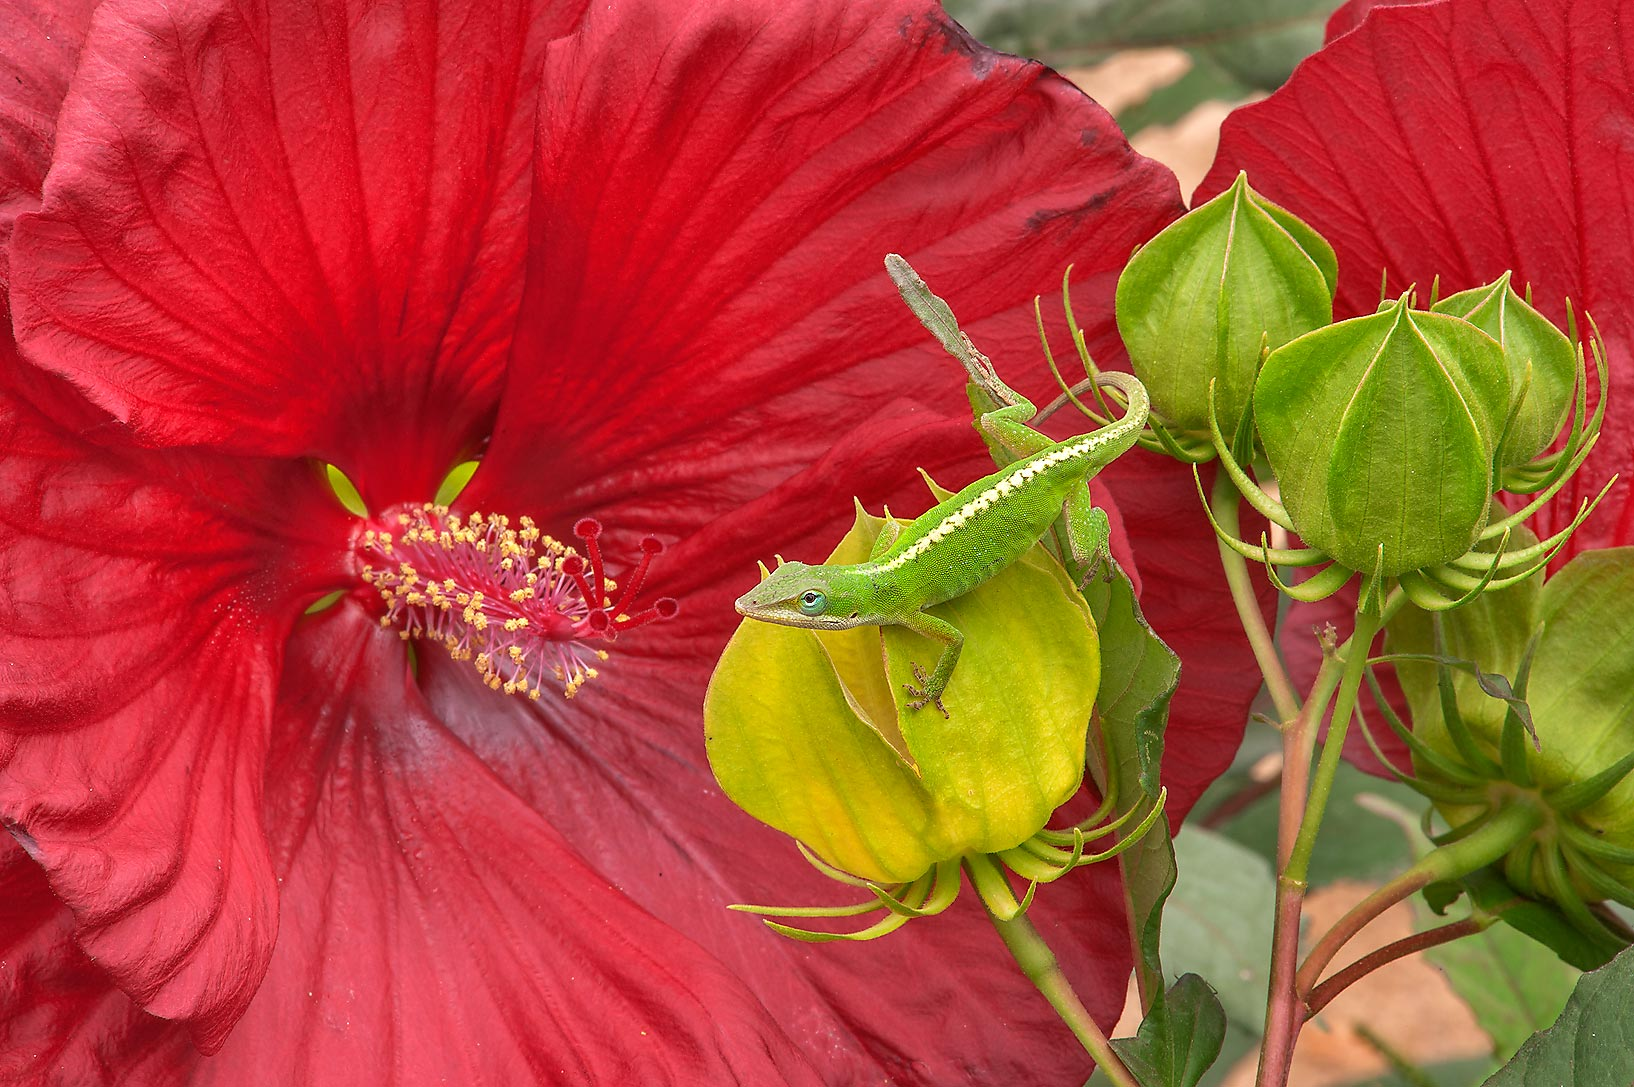 Hibiscus with a green anole lizard in Antique Rose Emporium. Independence, Texas